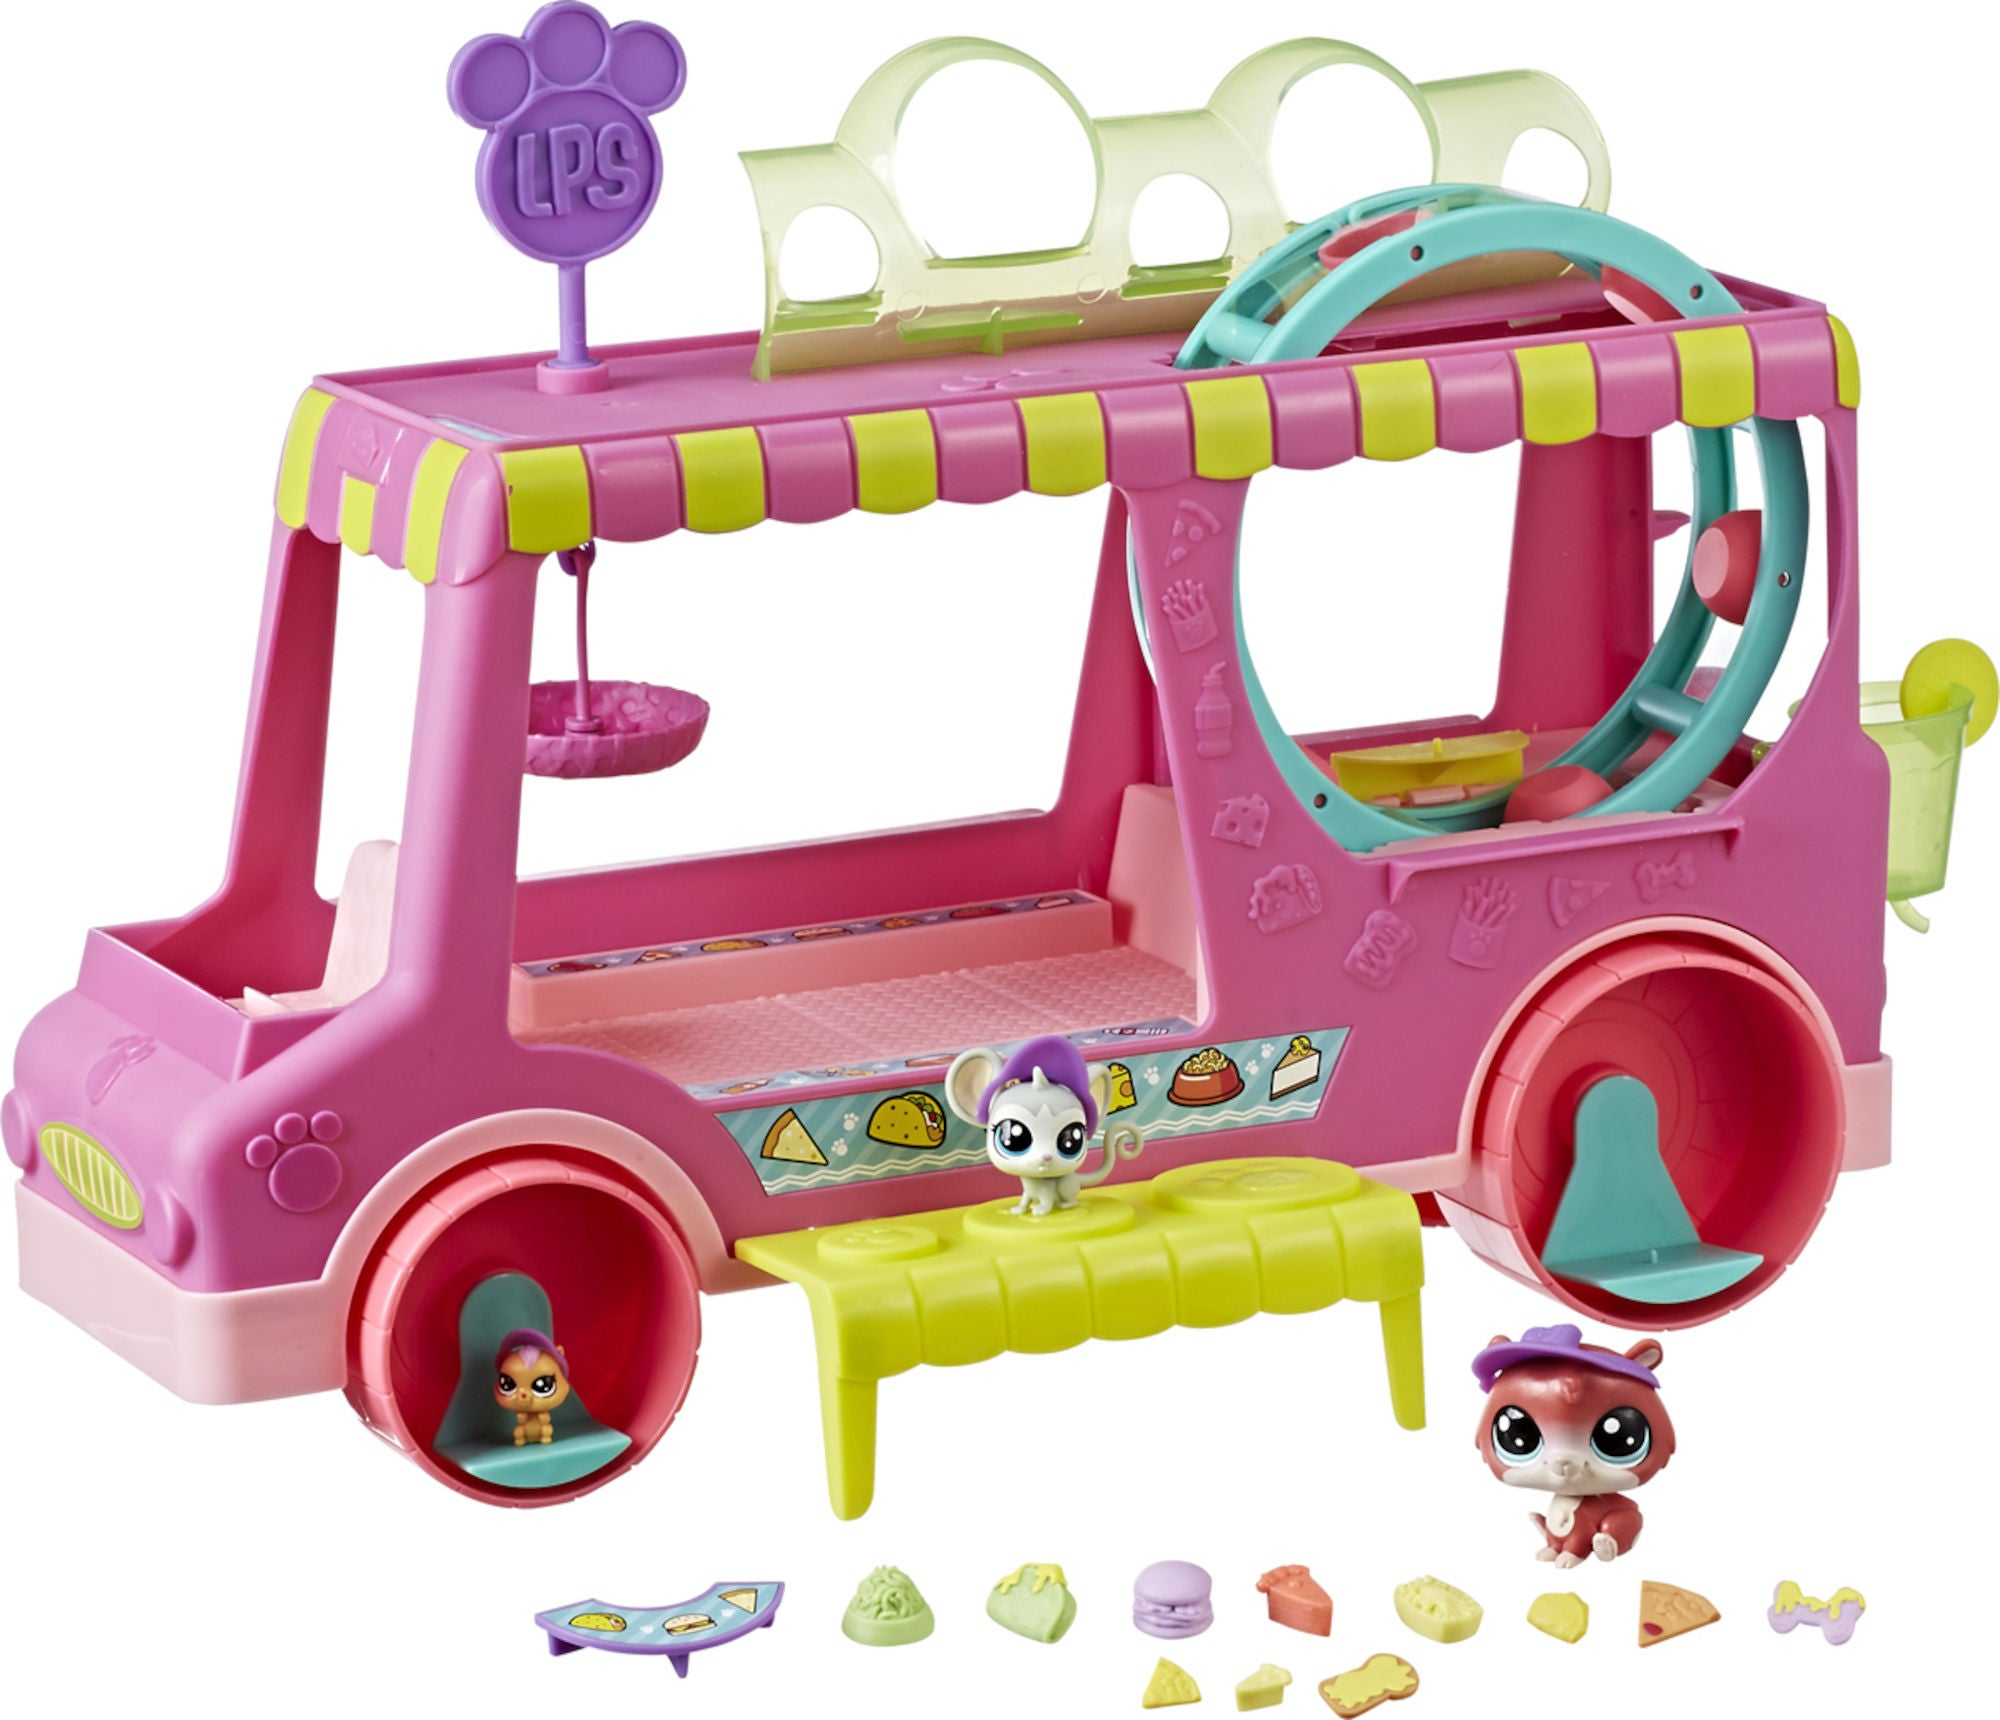 Osta Littlest Pet Shop Ruoka-auto | Jollyroom